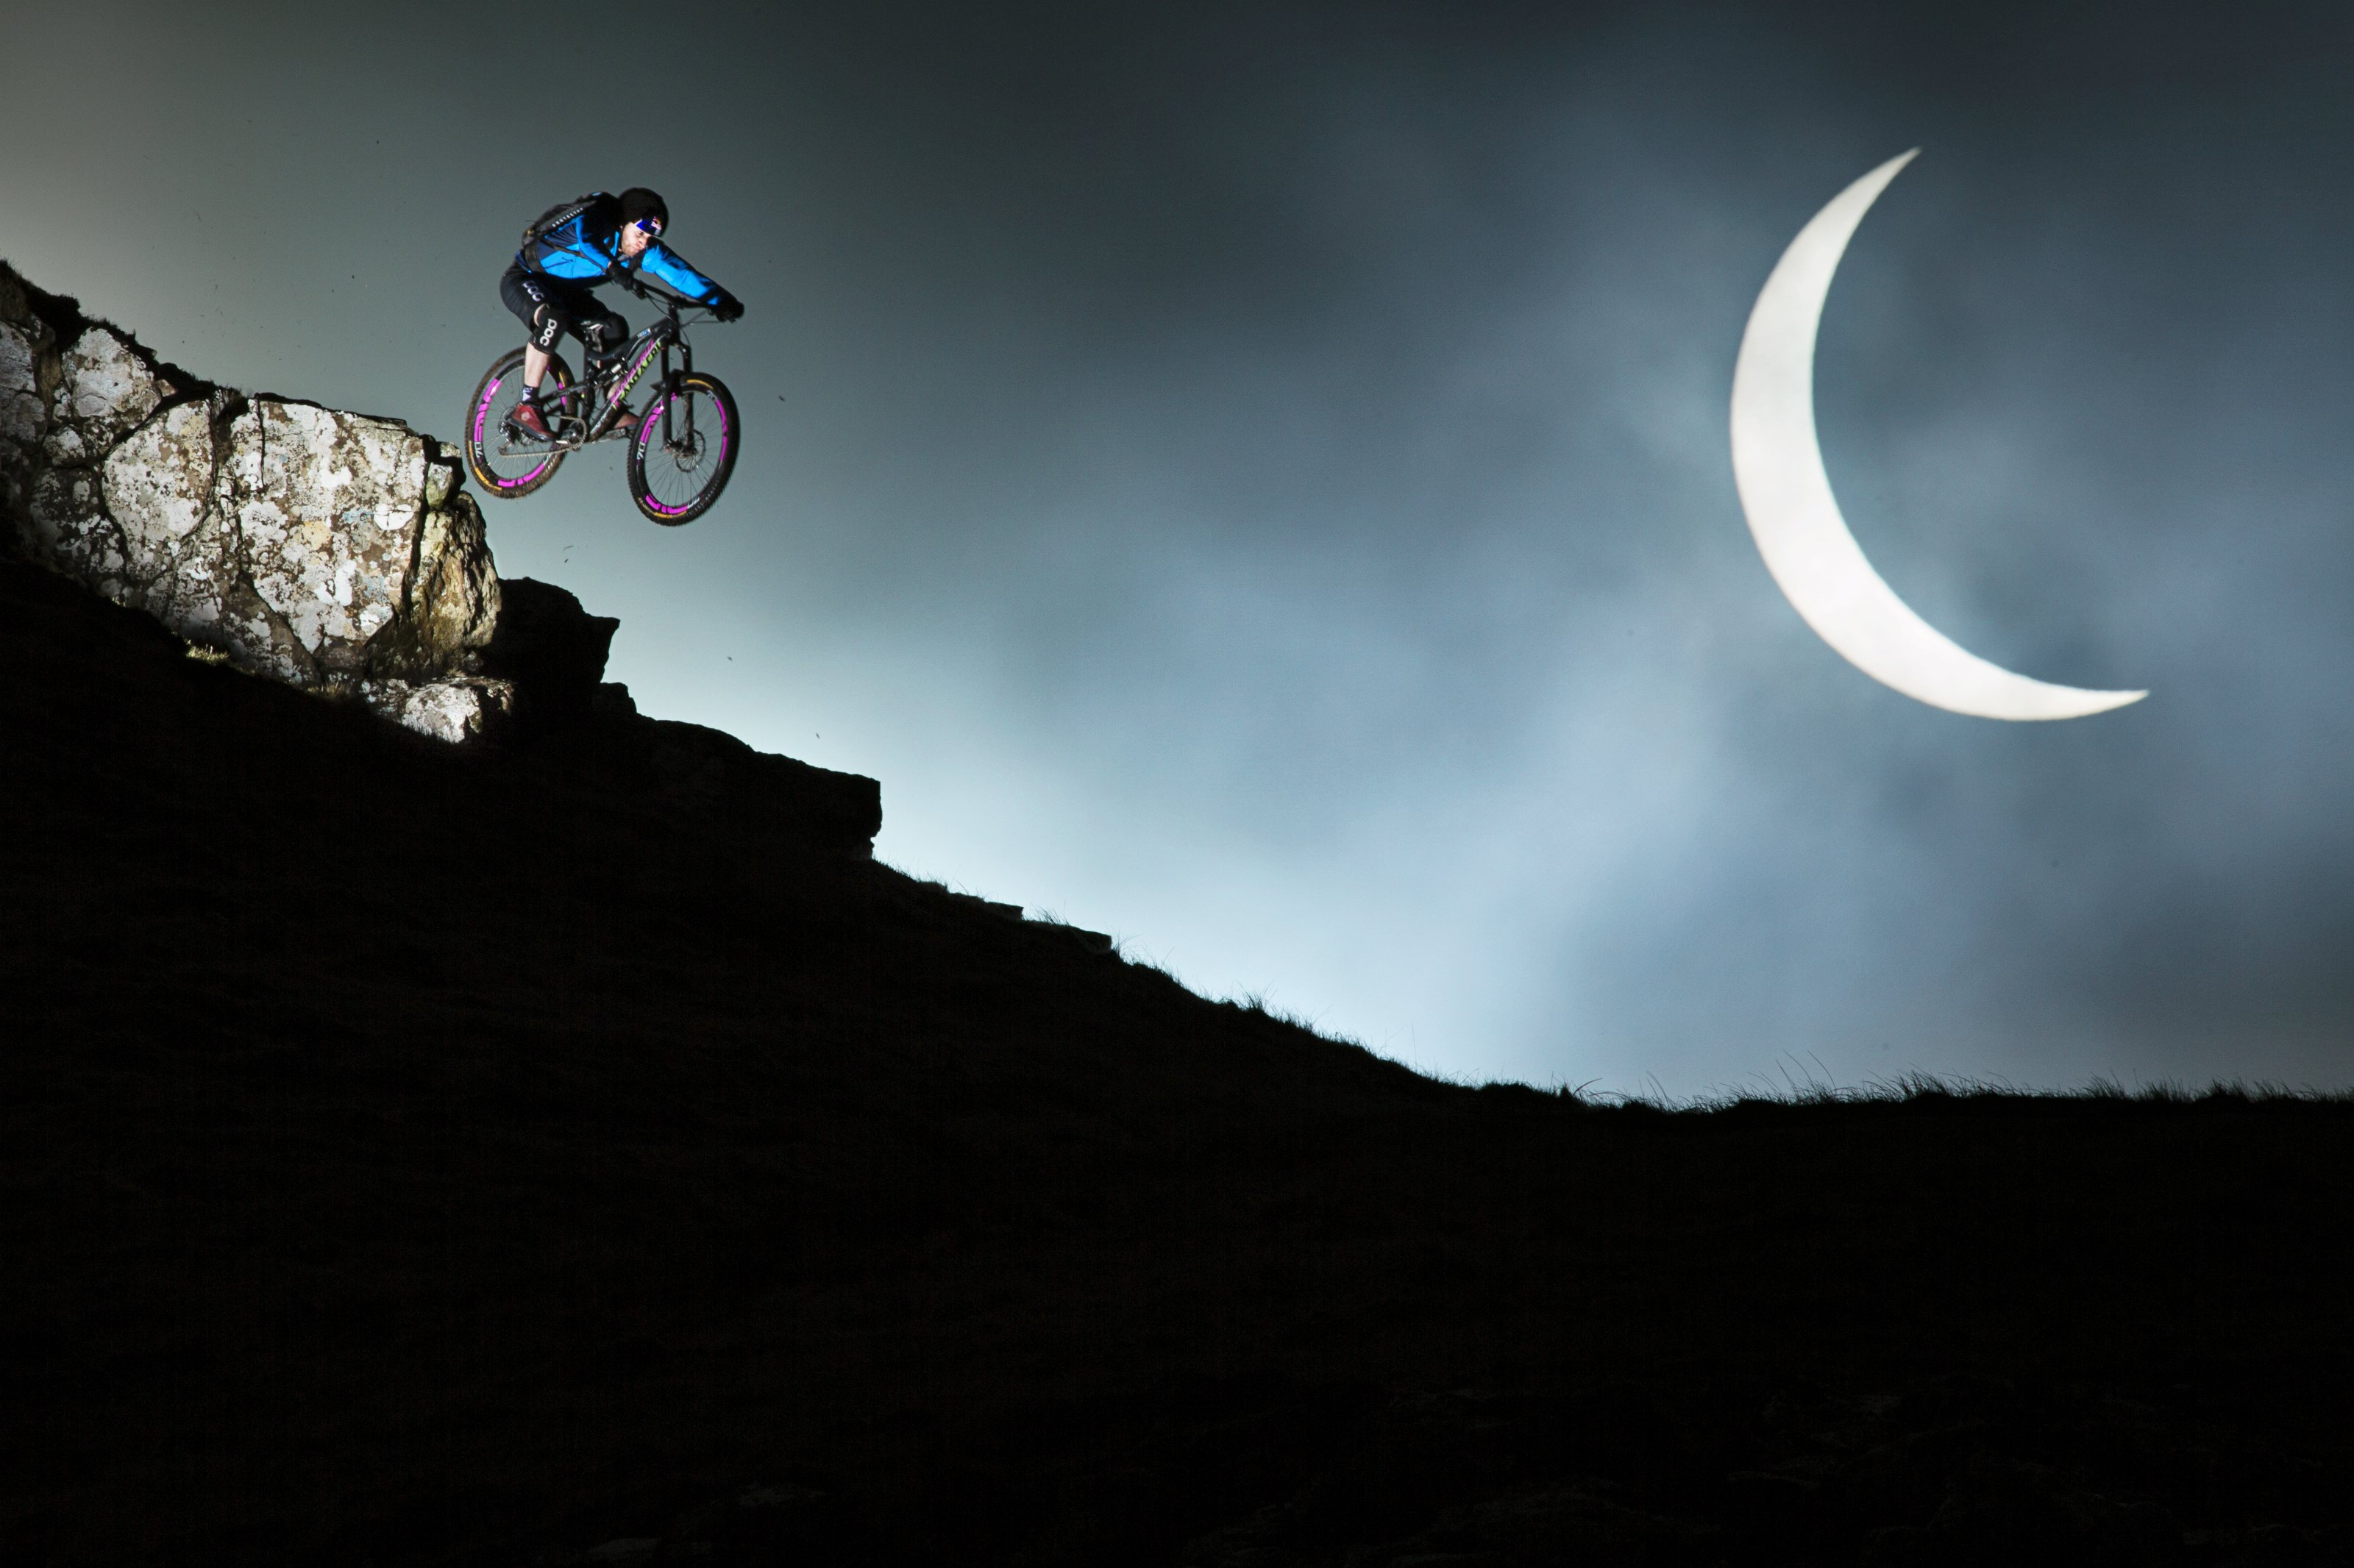 How cyclist Danny MacAskill created this incredibe eclipse shot